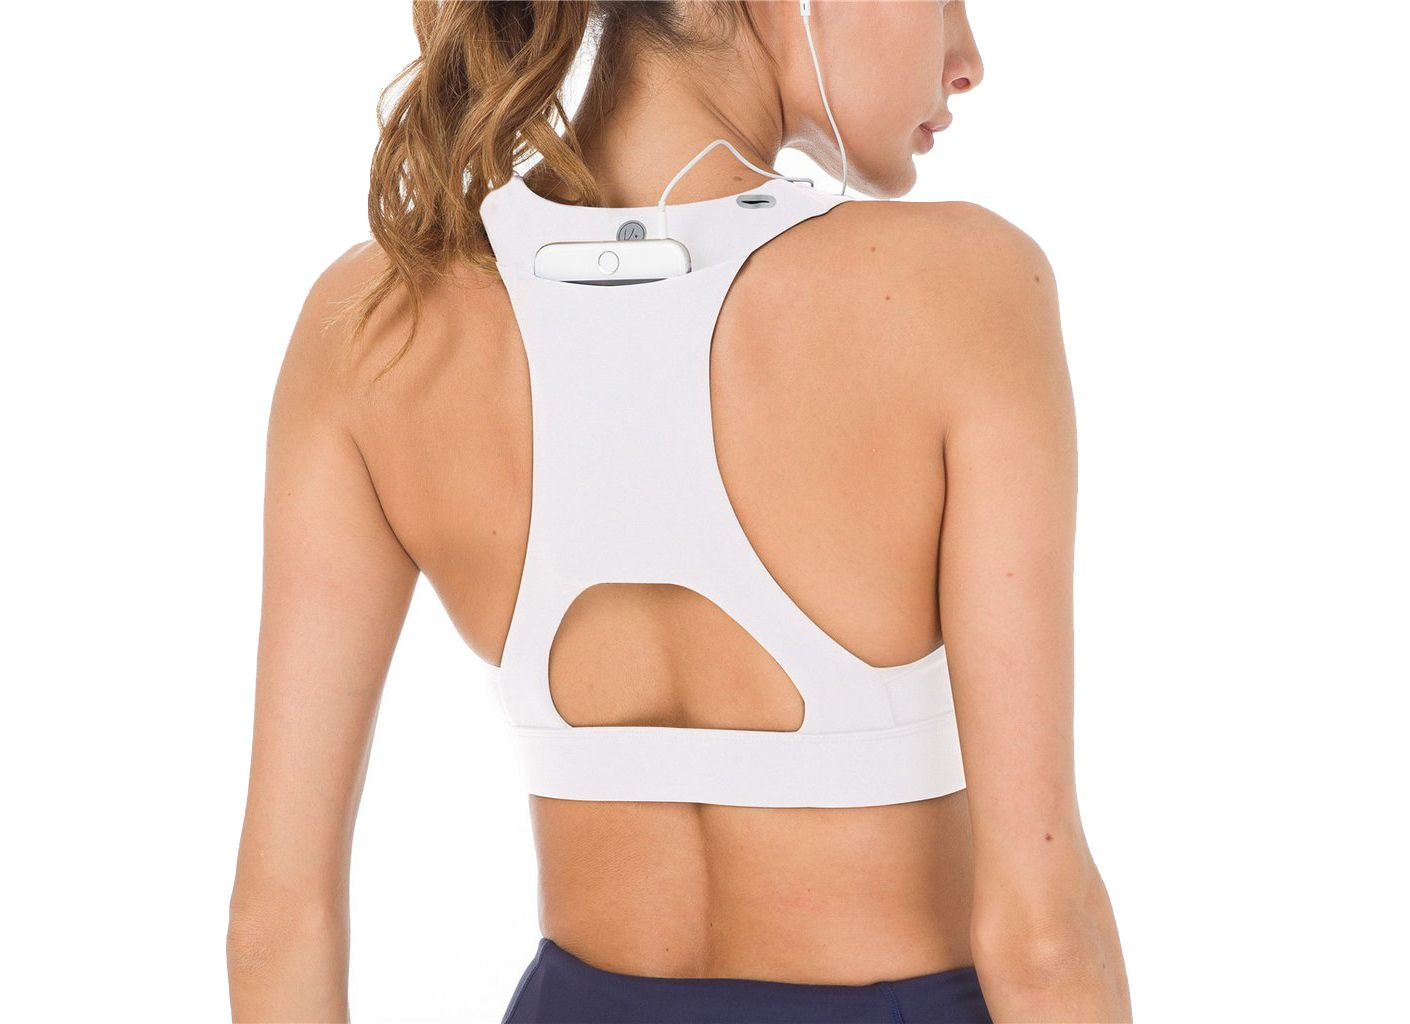 ed84c37f4110a 9 of the best sports bras with a pocket for your phone